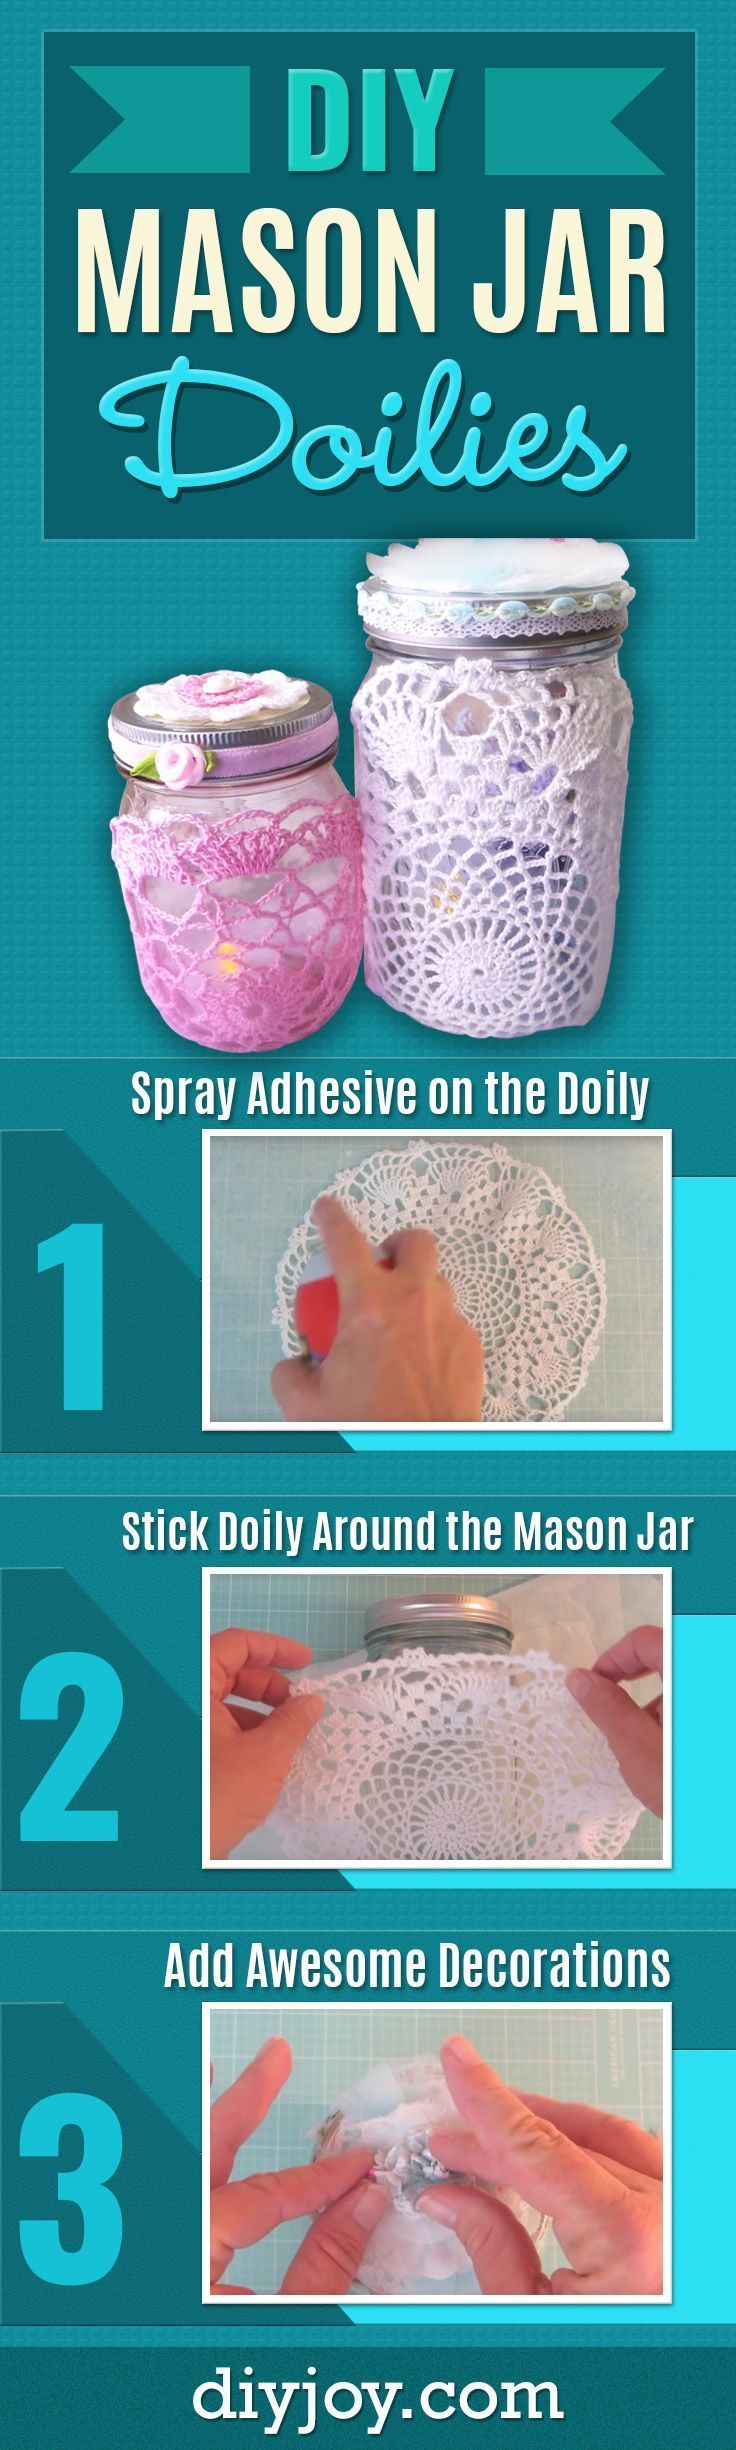 DIY Mason Jar Crafts With Doilies - Cute DIY Home Decor and Rustic, Country Crafts for Cool Christmas Presents - How To Make Mason Jars With Doilies for Creative DIY Lighting and Table Decor